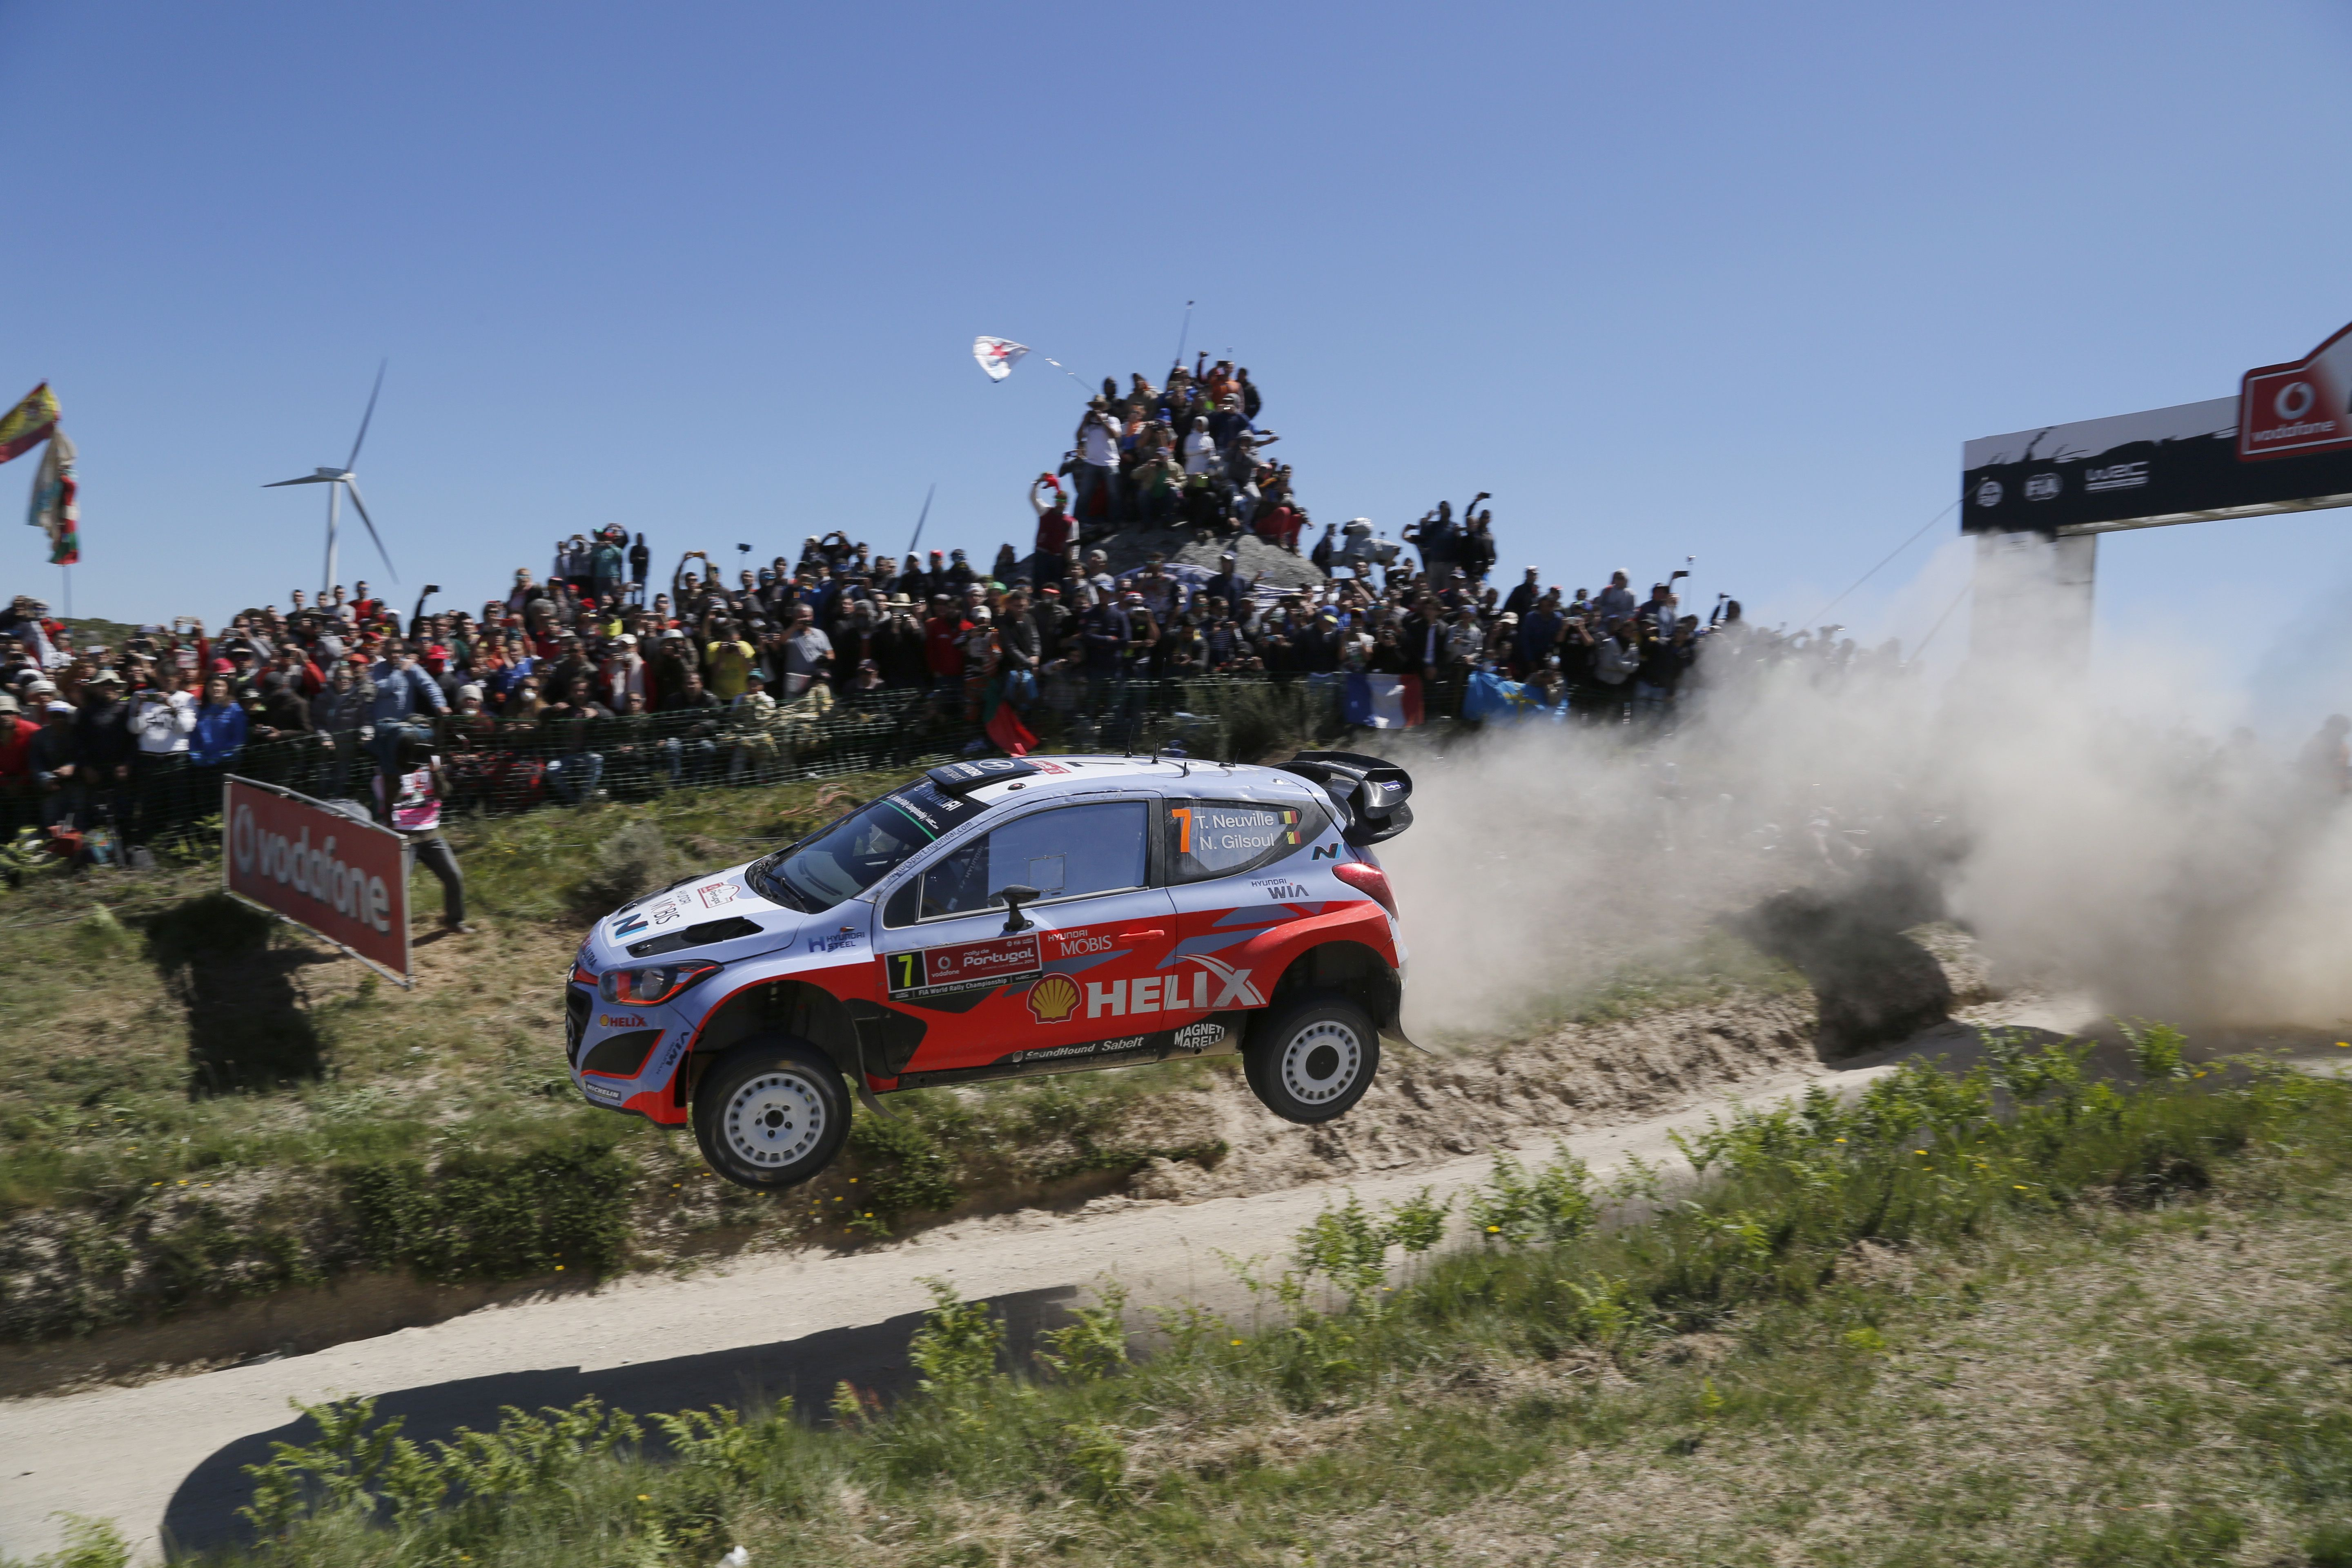 2015 WRC 포르투갈 랠리!물살을 가르고 거친 바위를 헤치며 거침없이 달린다!Portugal Rally Hyundai i20 WRC Action Race roughly across the rock and water current!